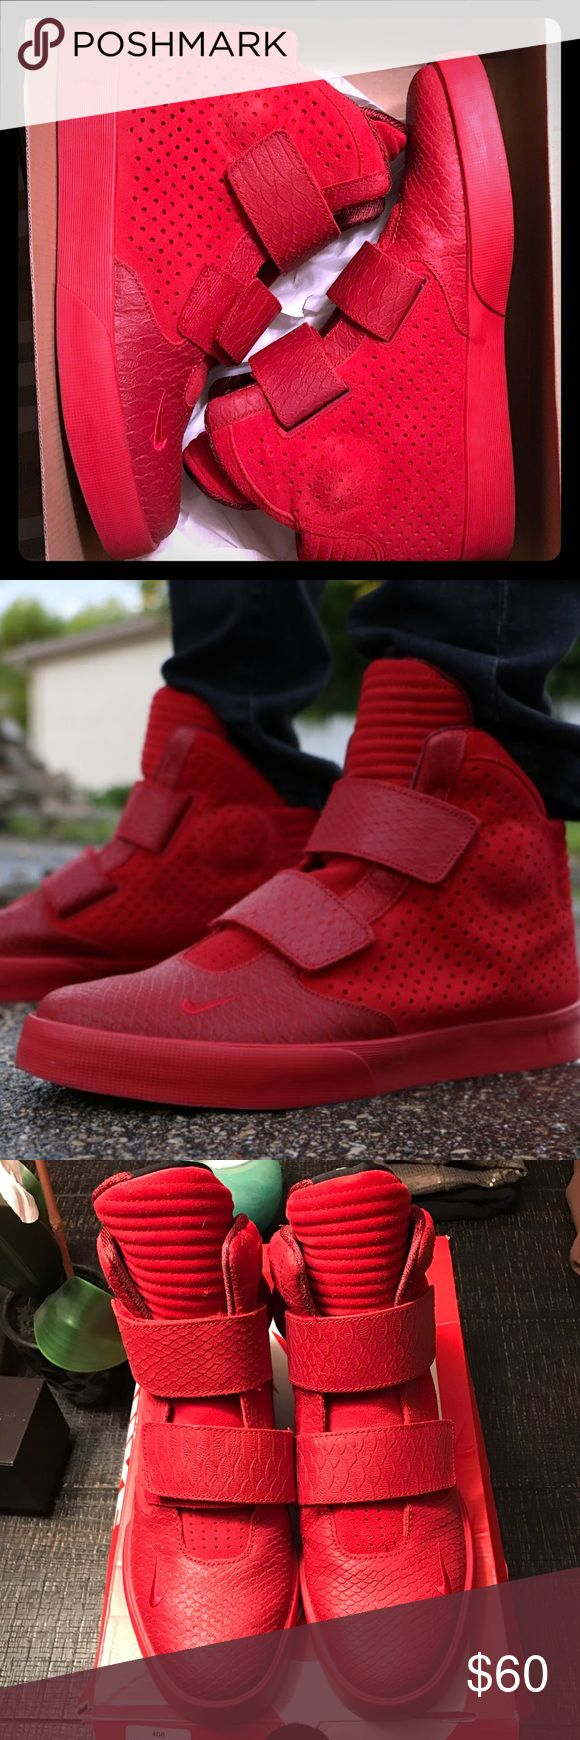 Nike Flystepper 2k3 Red October Size 11 Nike Flystepper 2k3 PRM - Red October  -Size 11 - Gym Red - Suede & Leather -comes from a smoke free home Nike Shoes Sneakers